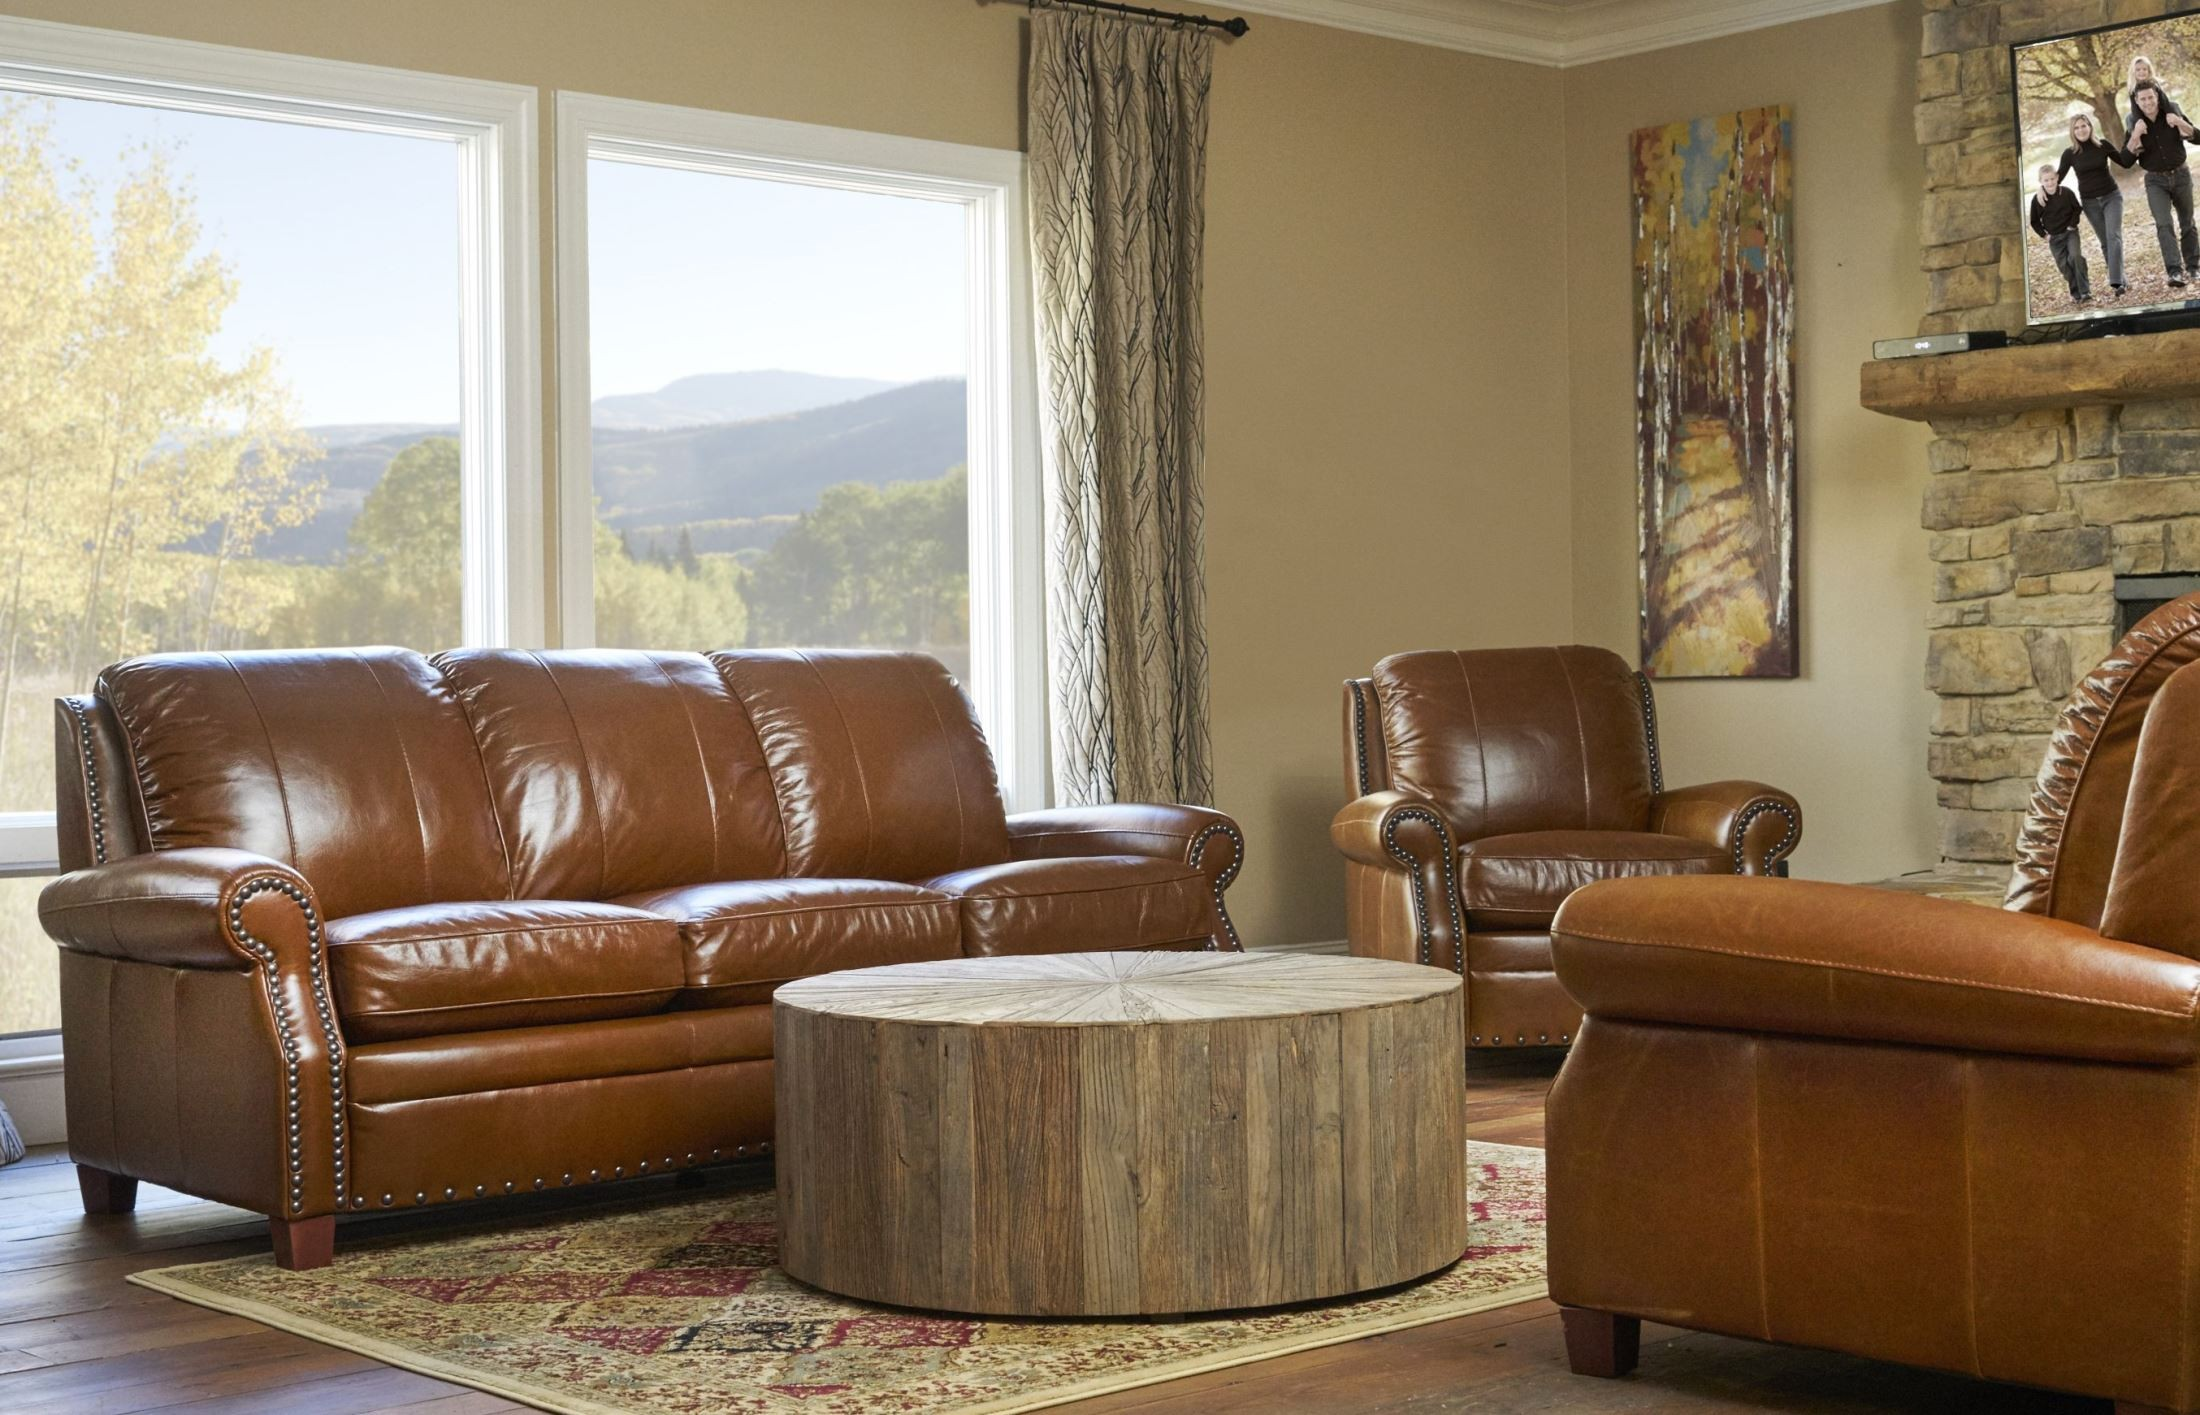 Ashton Safari Tan Living Room Set From Luke Leather Ashton Coleman Furniture